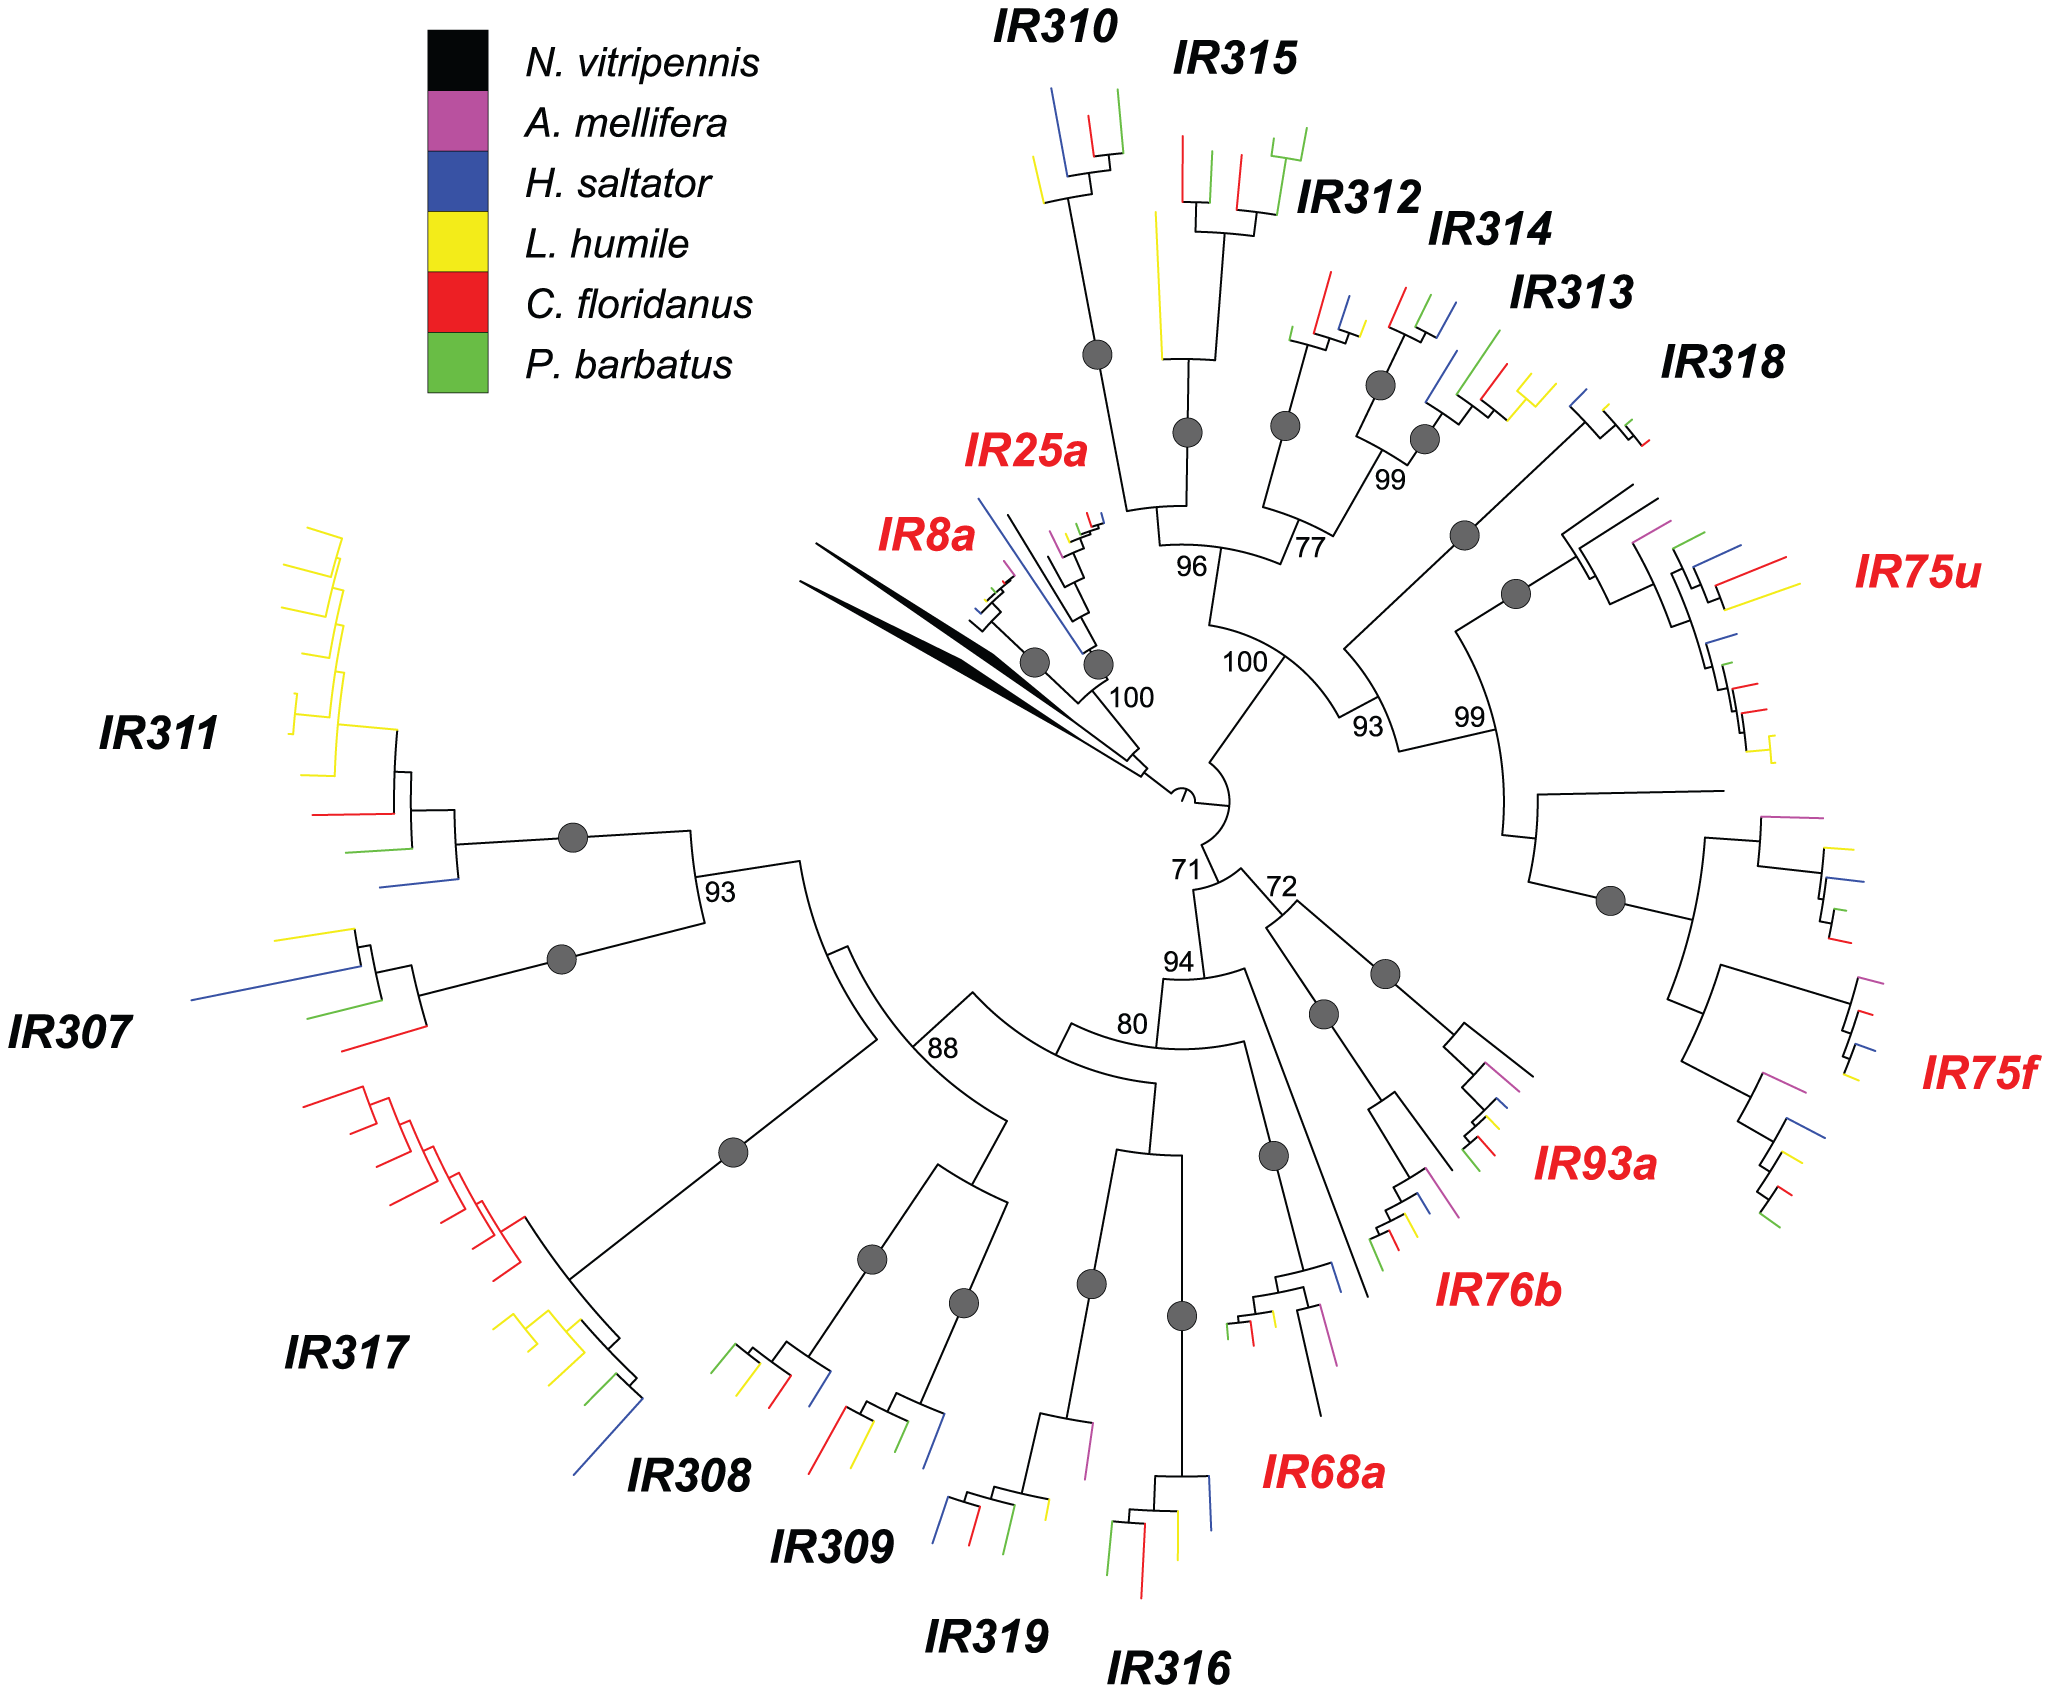 Phylogenetic relationships of Hymenoptera <i>Ir</i> genes.